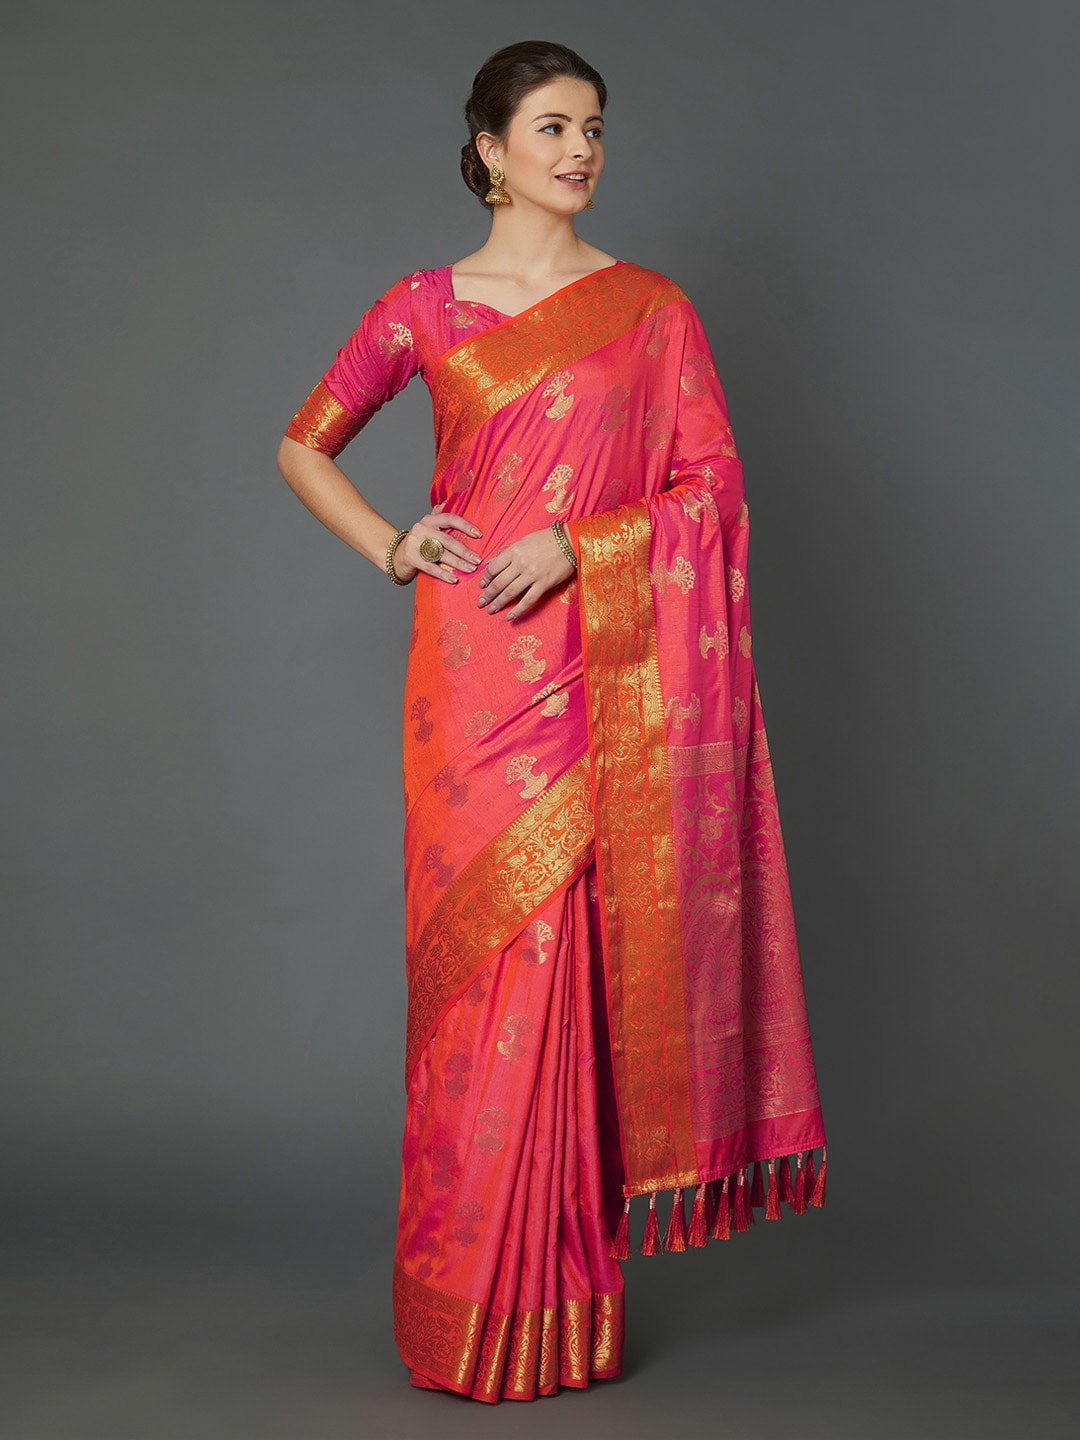 25050895659 Saree - Buy Sarees Online at Best Price in India